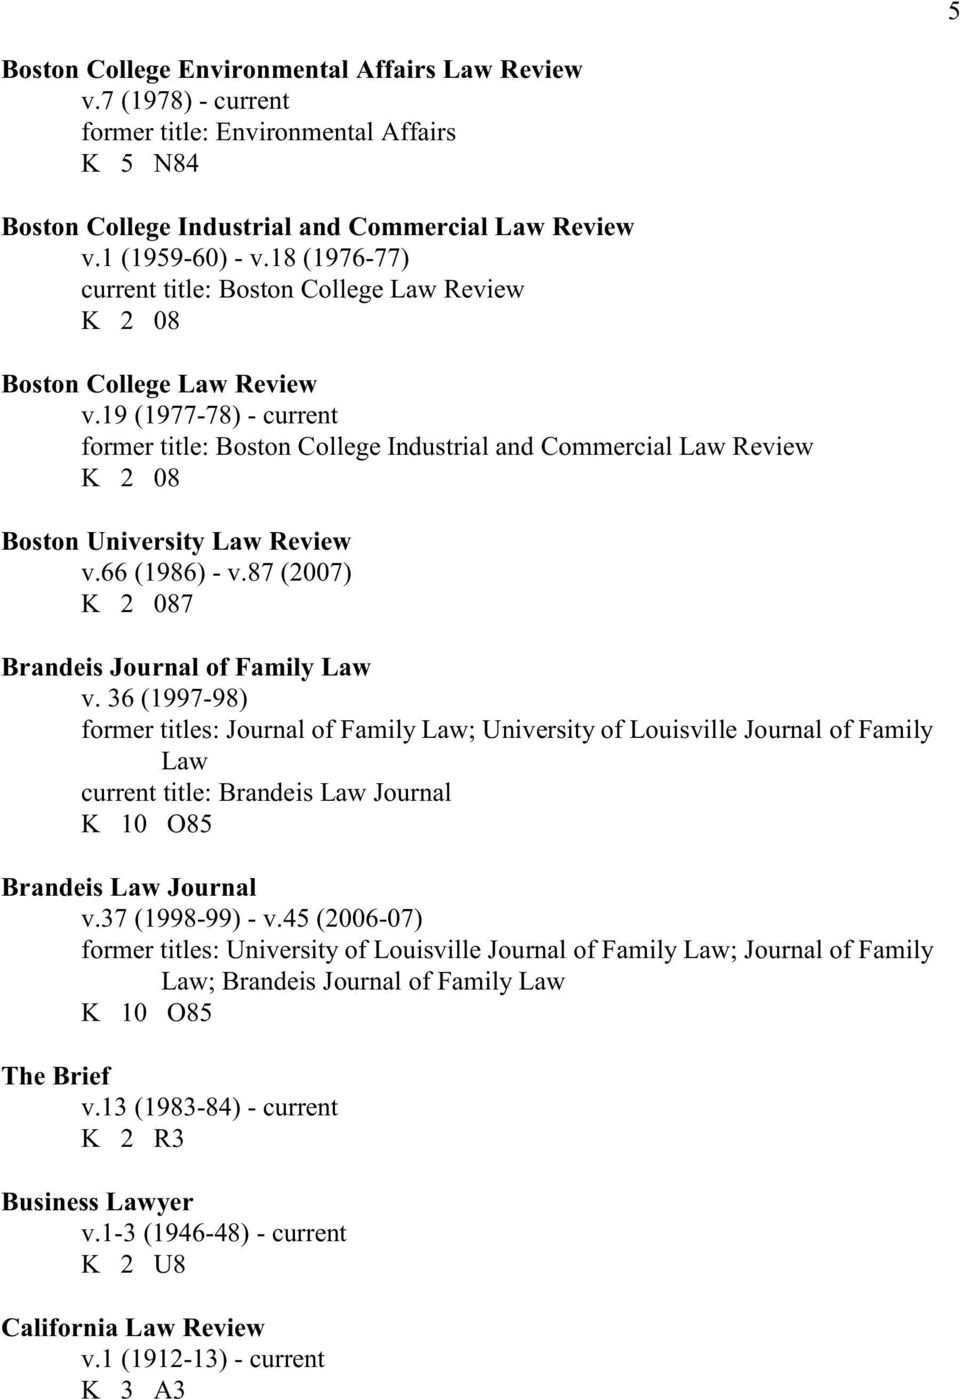 19 (1977-78) - current former title: Boston College Industrial and Commercial Law Review K 2 08 Boston University Law Review v.66 (1986) - v.87 (2007) K 2 087 Brandeis Journal of Family Law v.